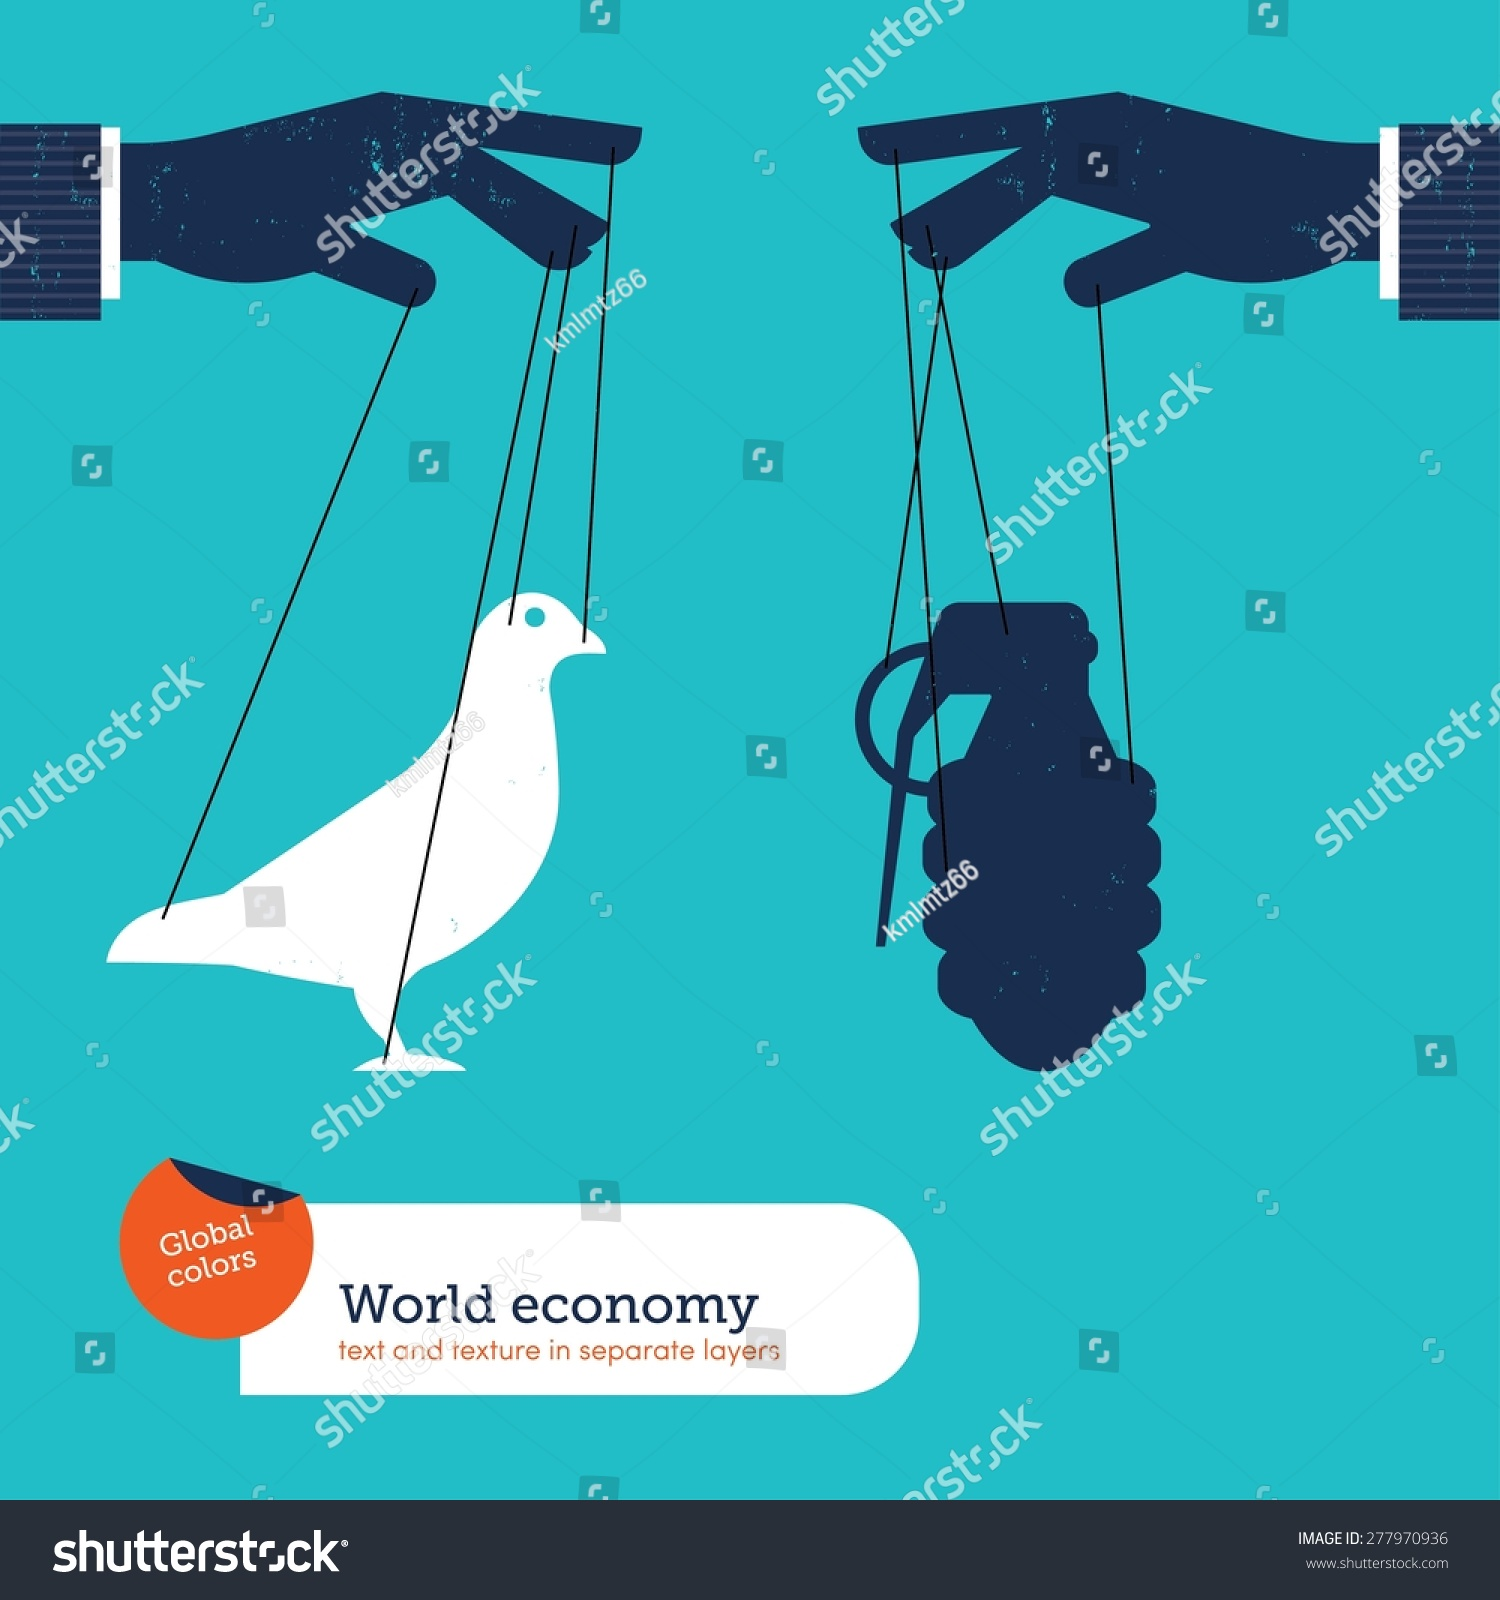 Hand controlling peace and war Vector illustration Eps10 file Global colors Text and Texture in separate layers